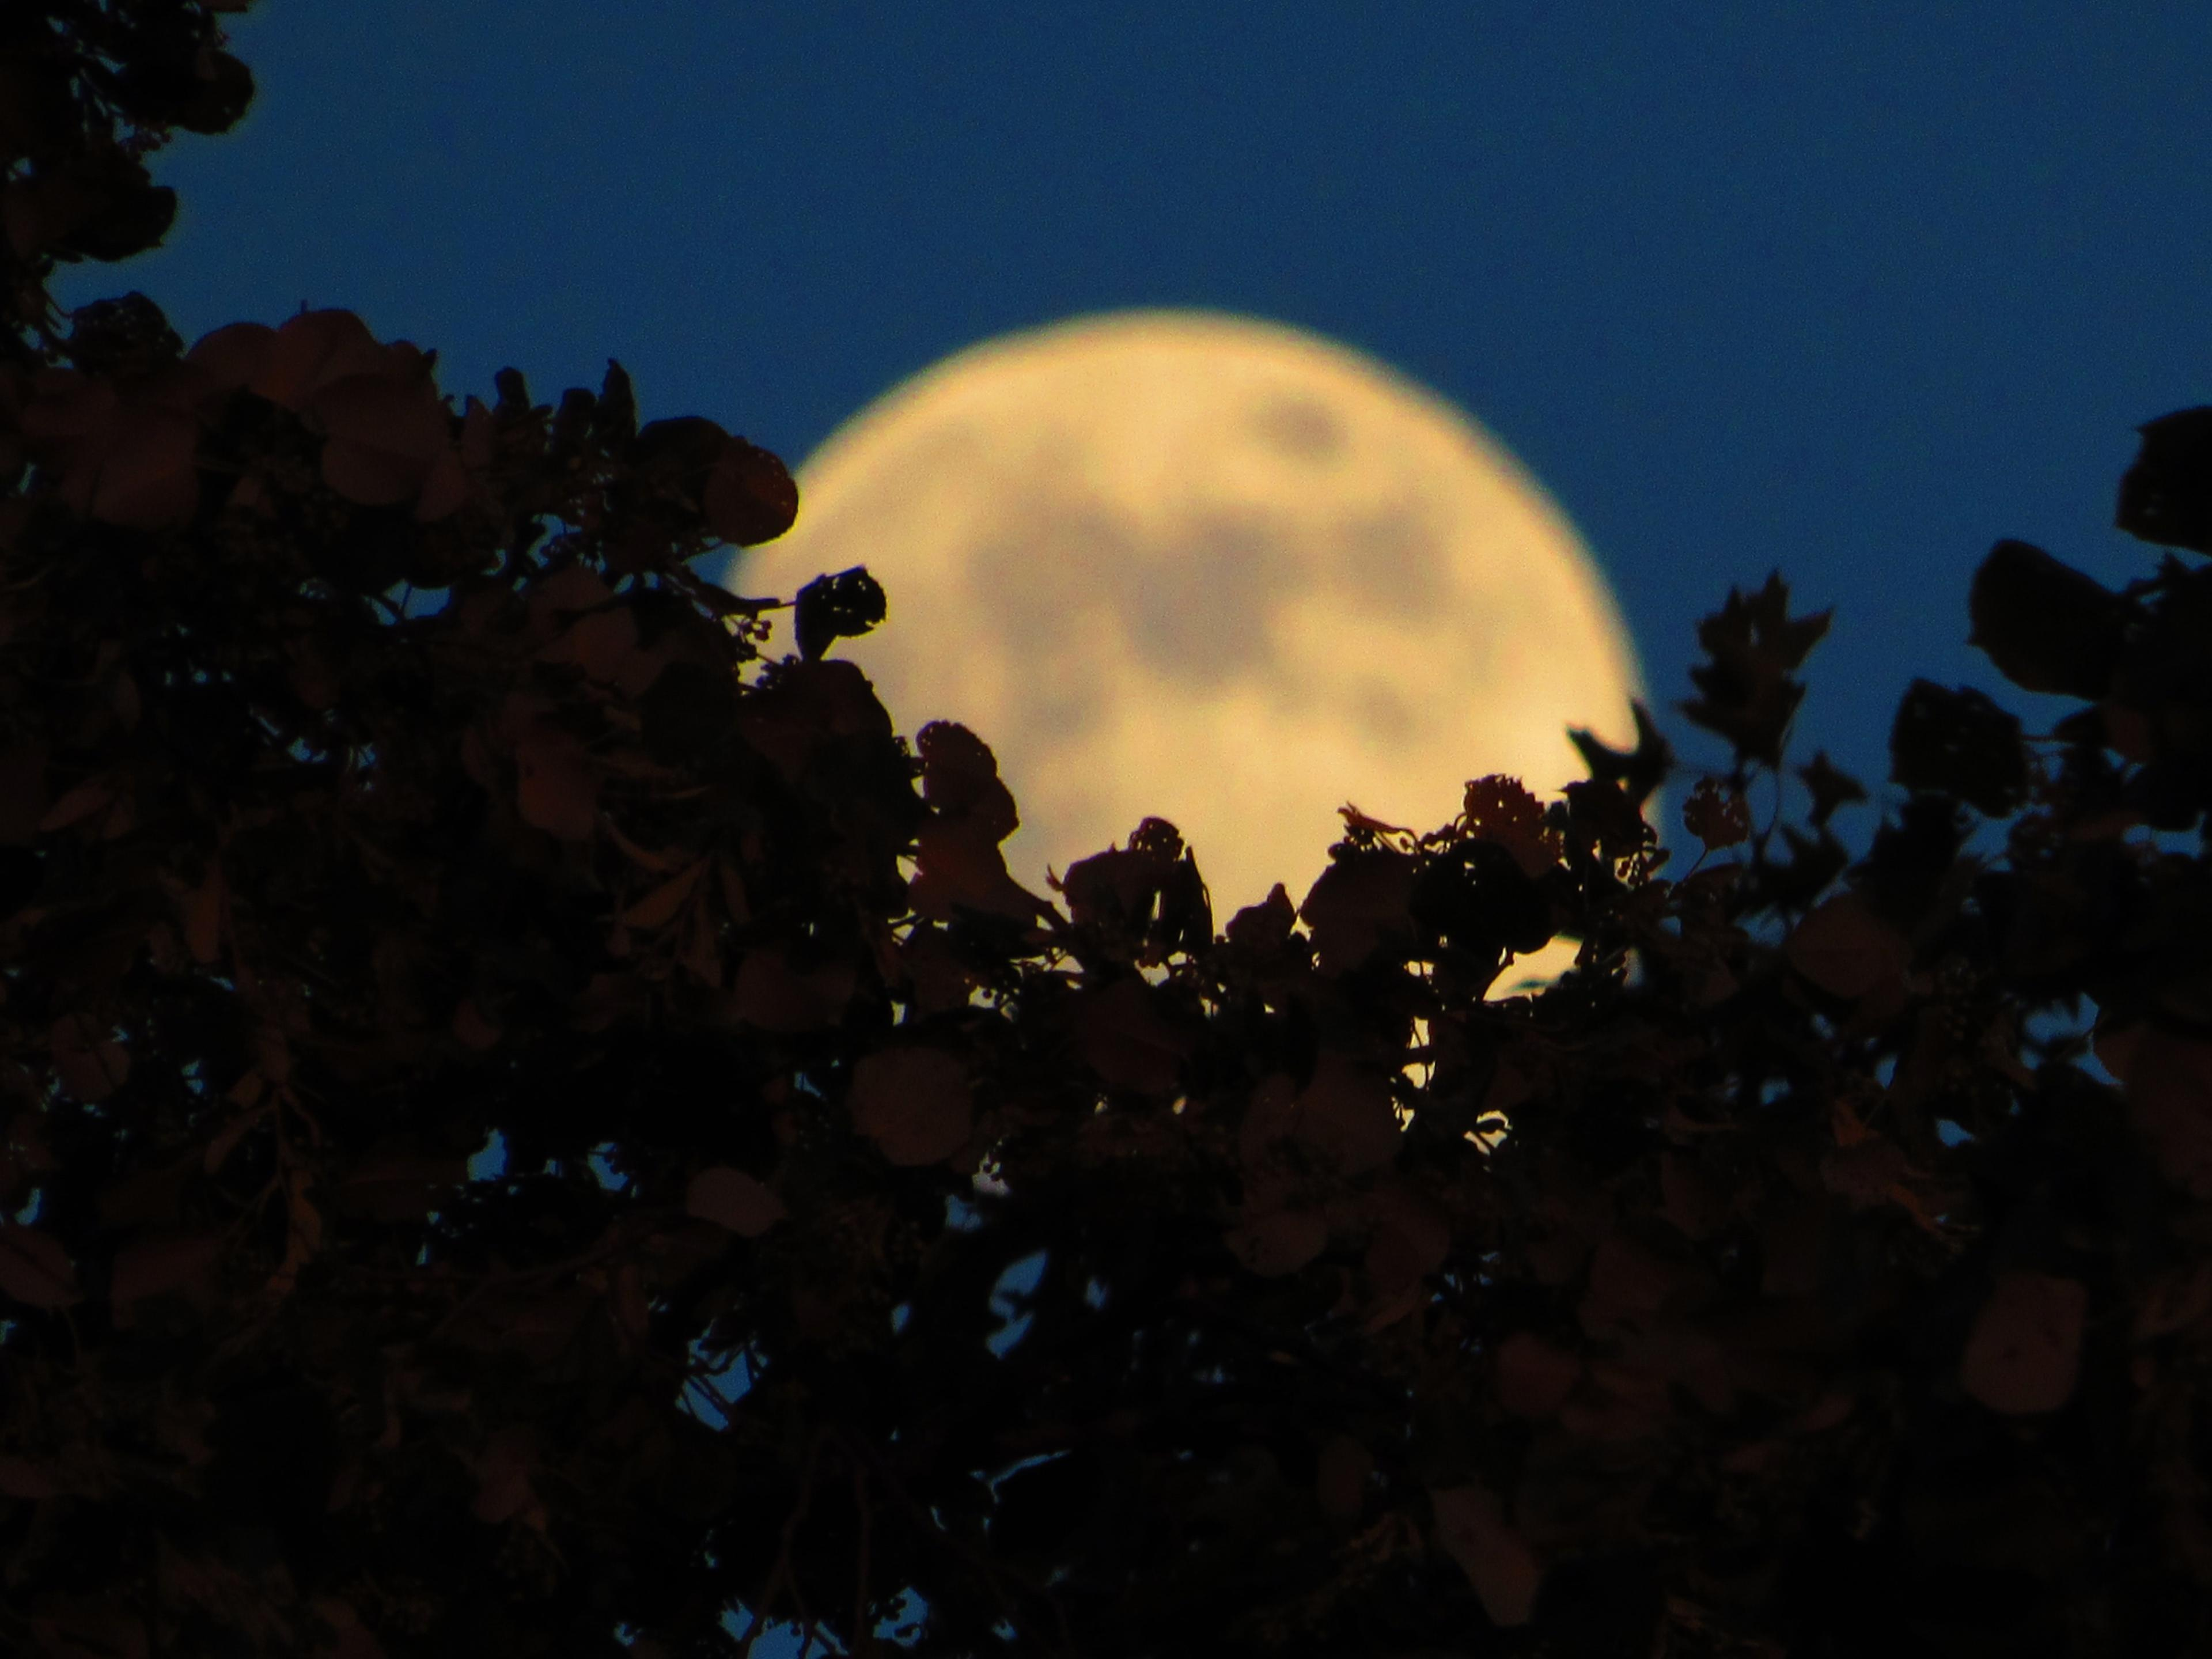 A buttery yellow full moon half-covered by lacy leaves and branches.